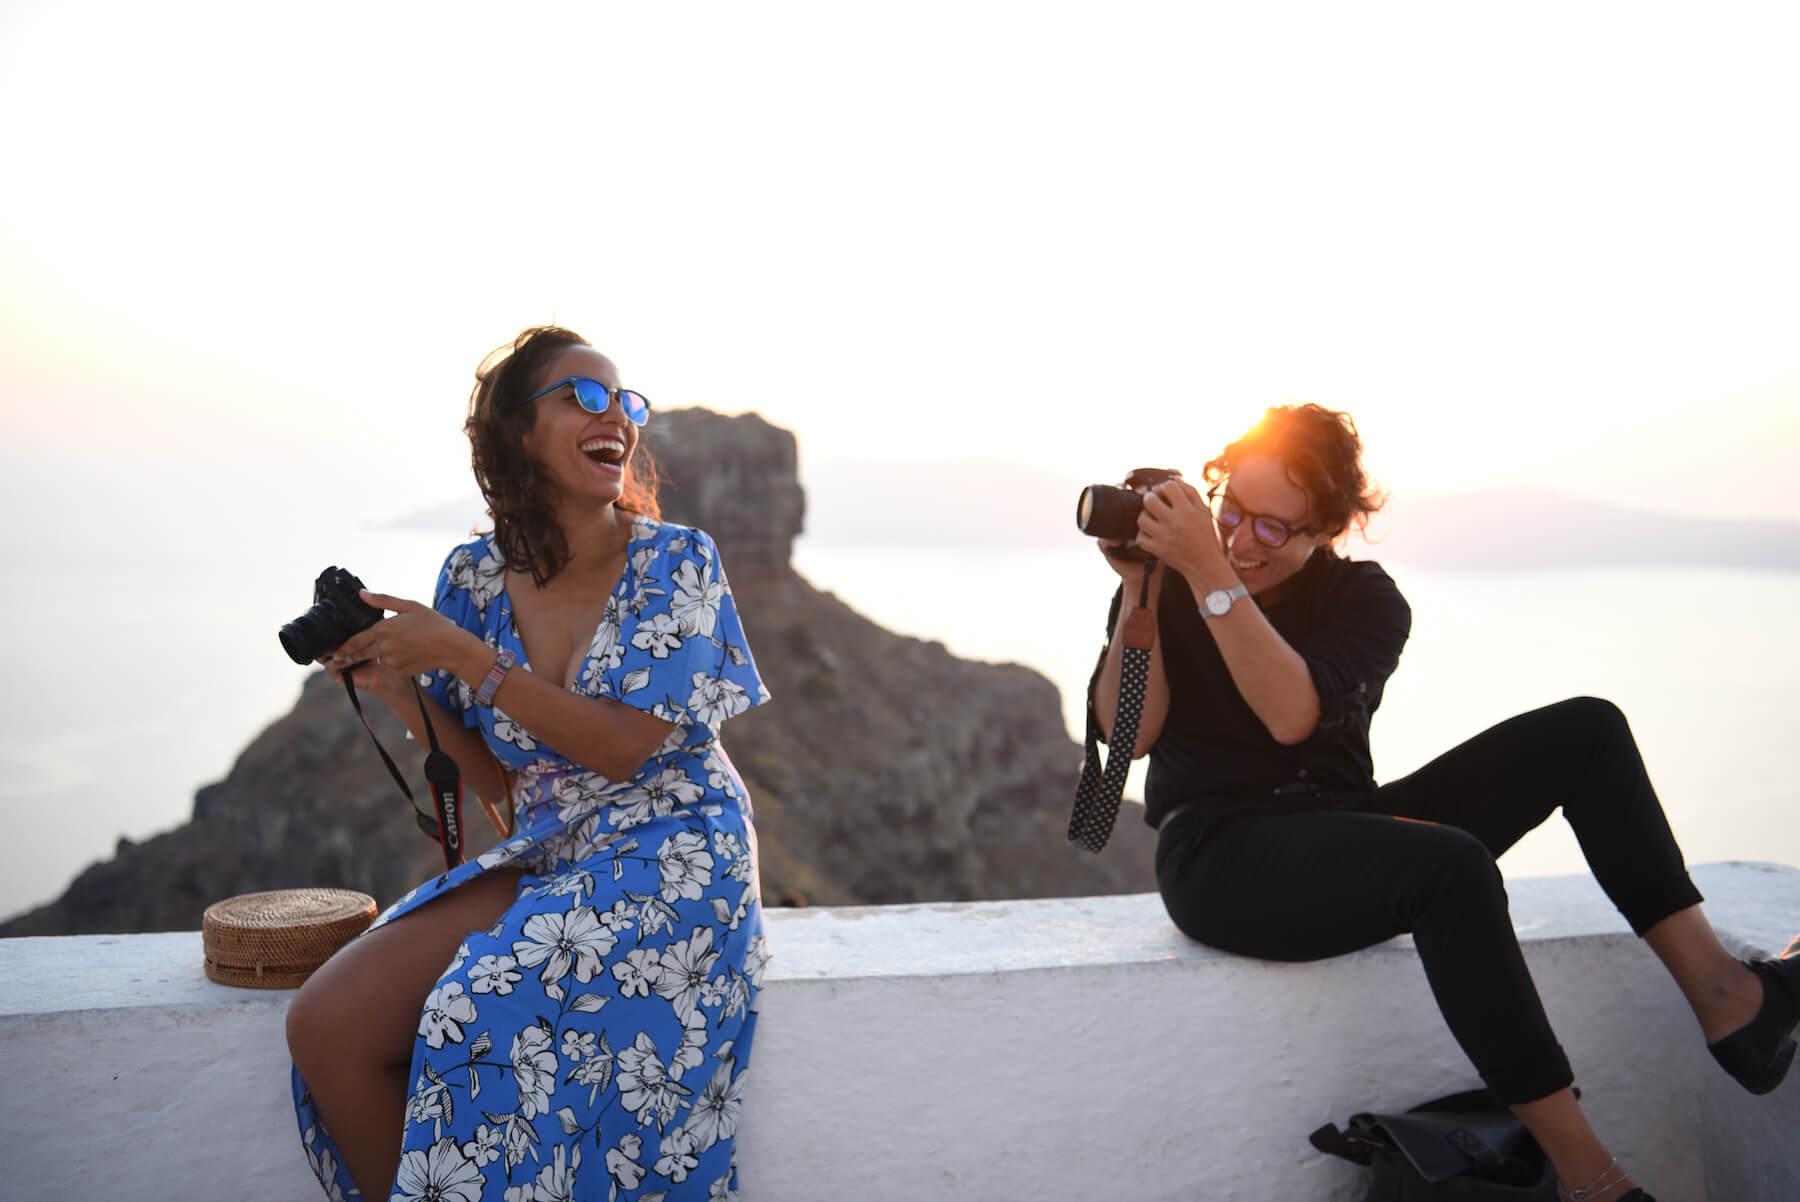 Two women sitting and laughing while one takes a photo in Santorini, Greece